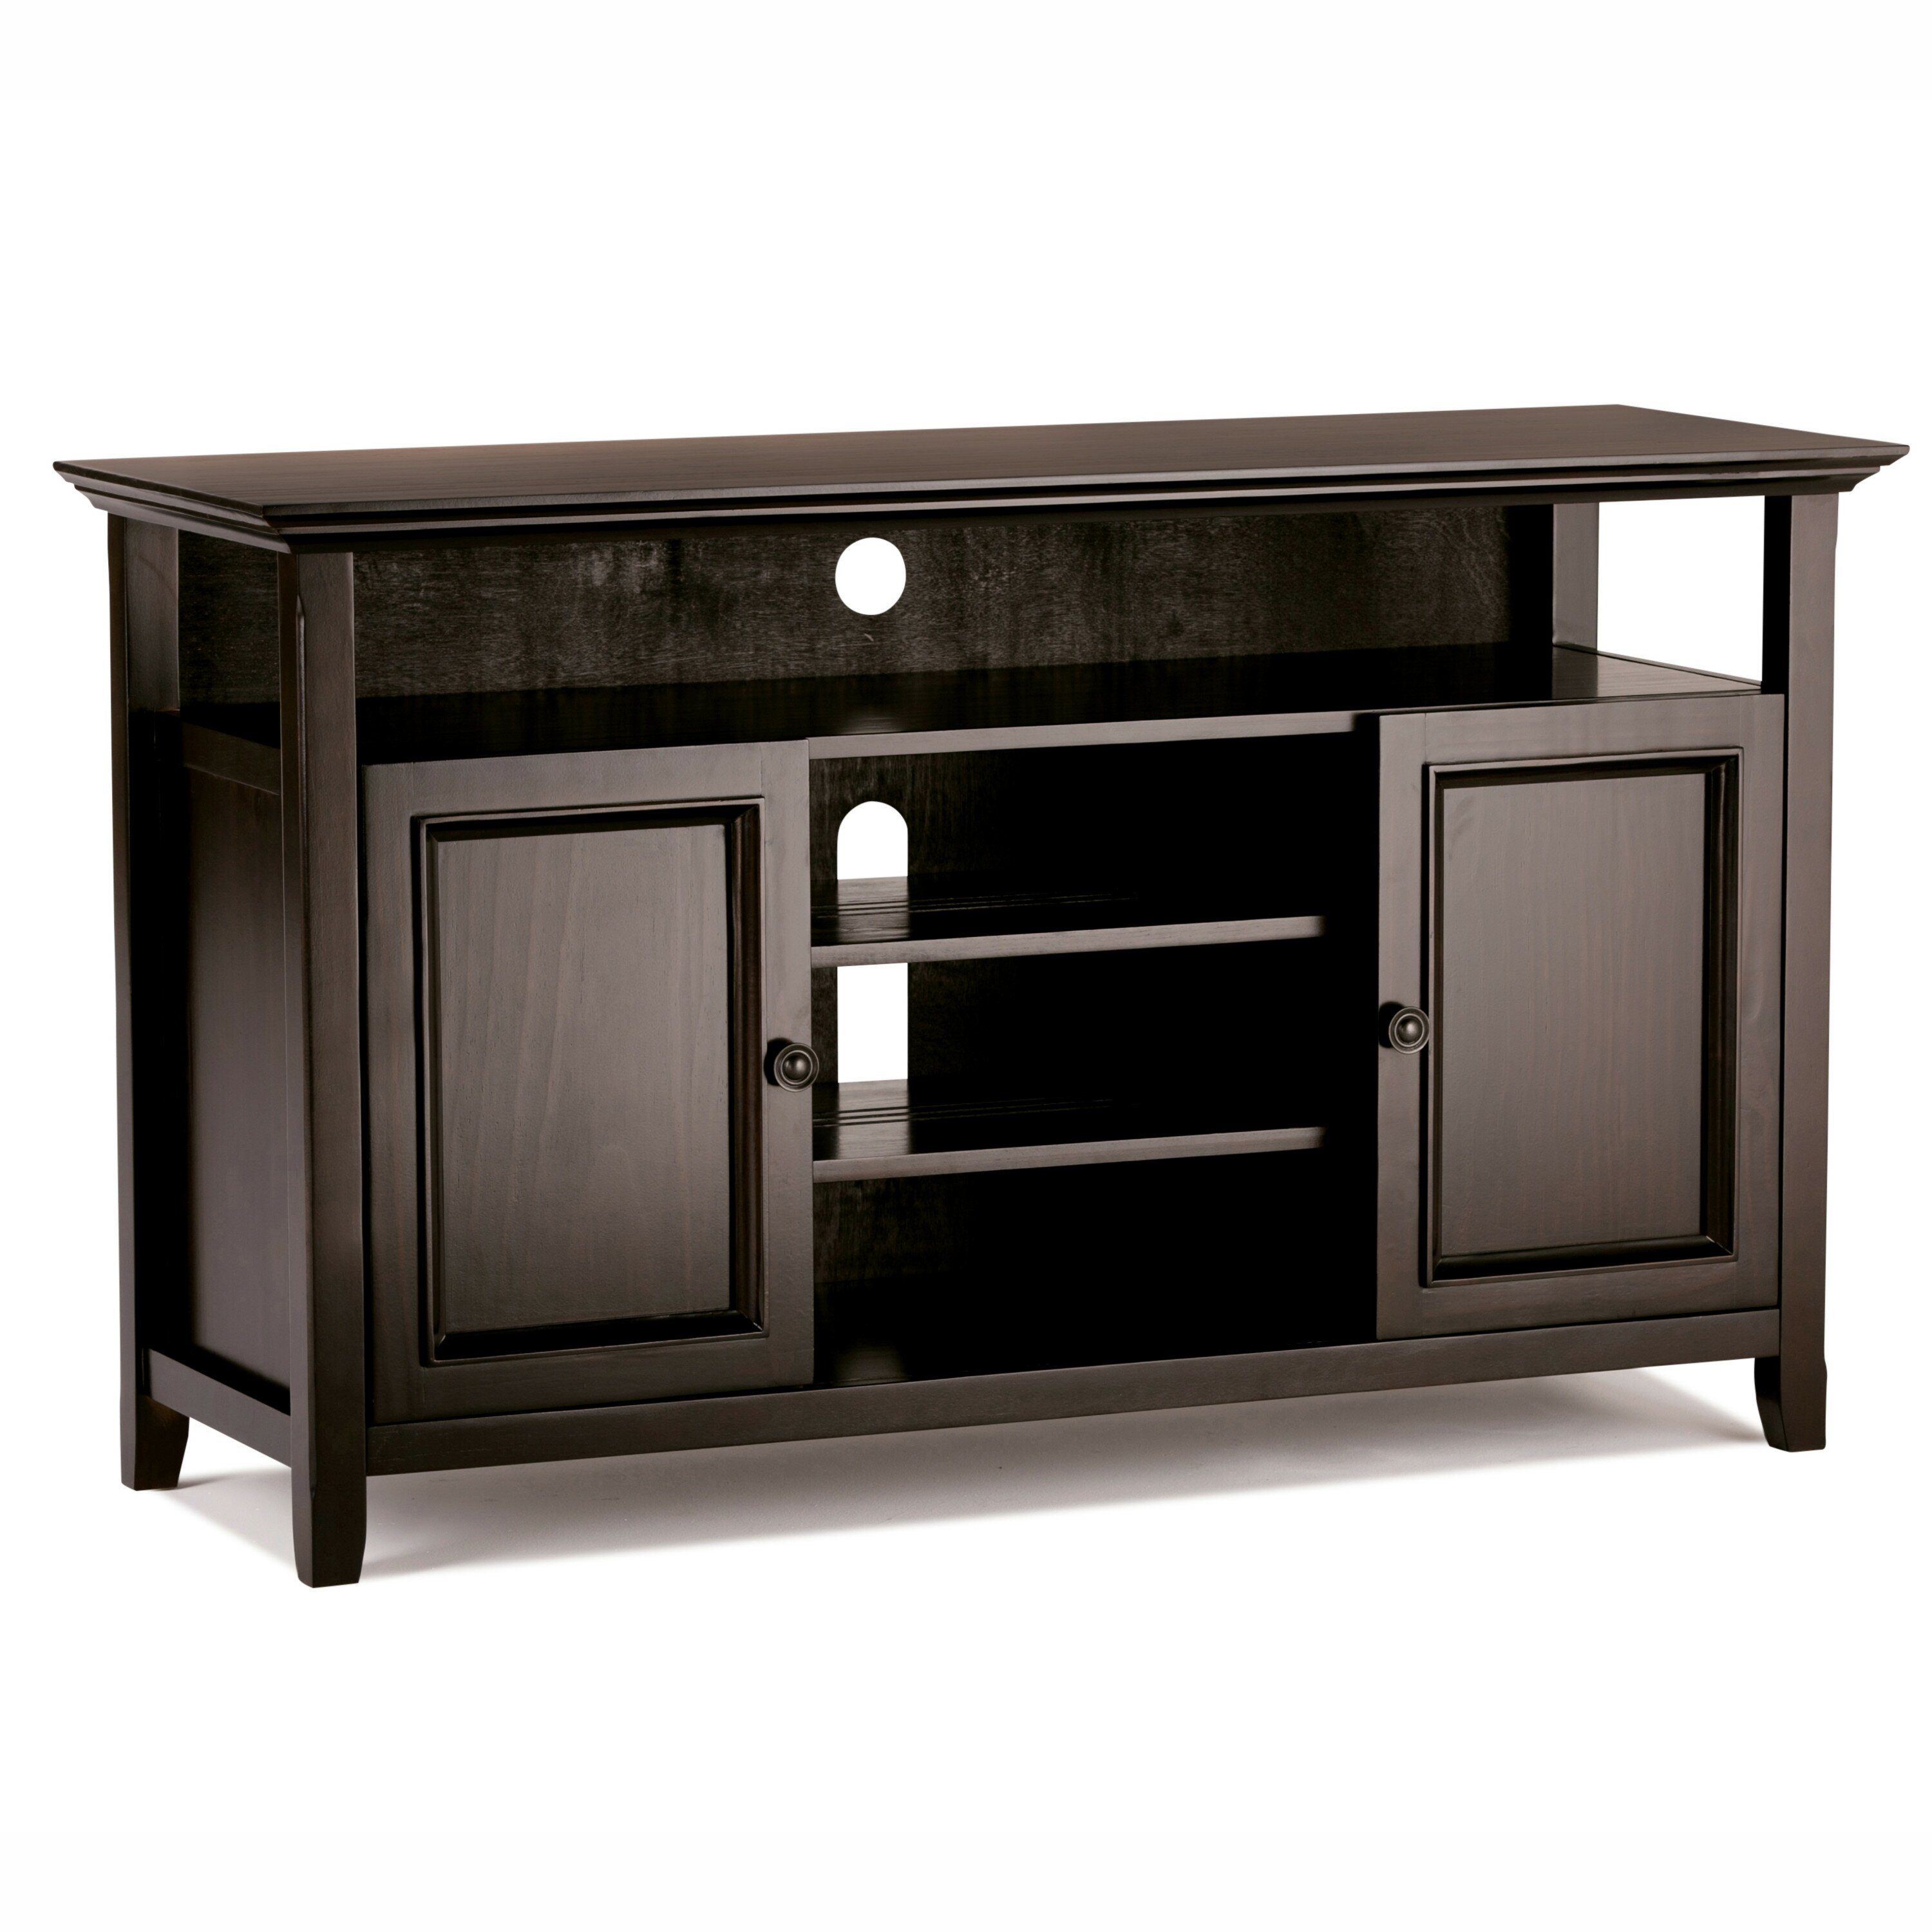 Simpli Home Amherst 54quot TV Stand amp Reviews Wayfair : Simpli Home Amherst 54 TV Stand from www.wayfair.com size 3000 x 3000 jpeg 494kB